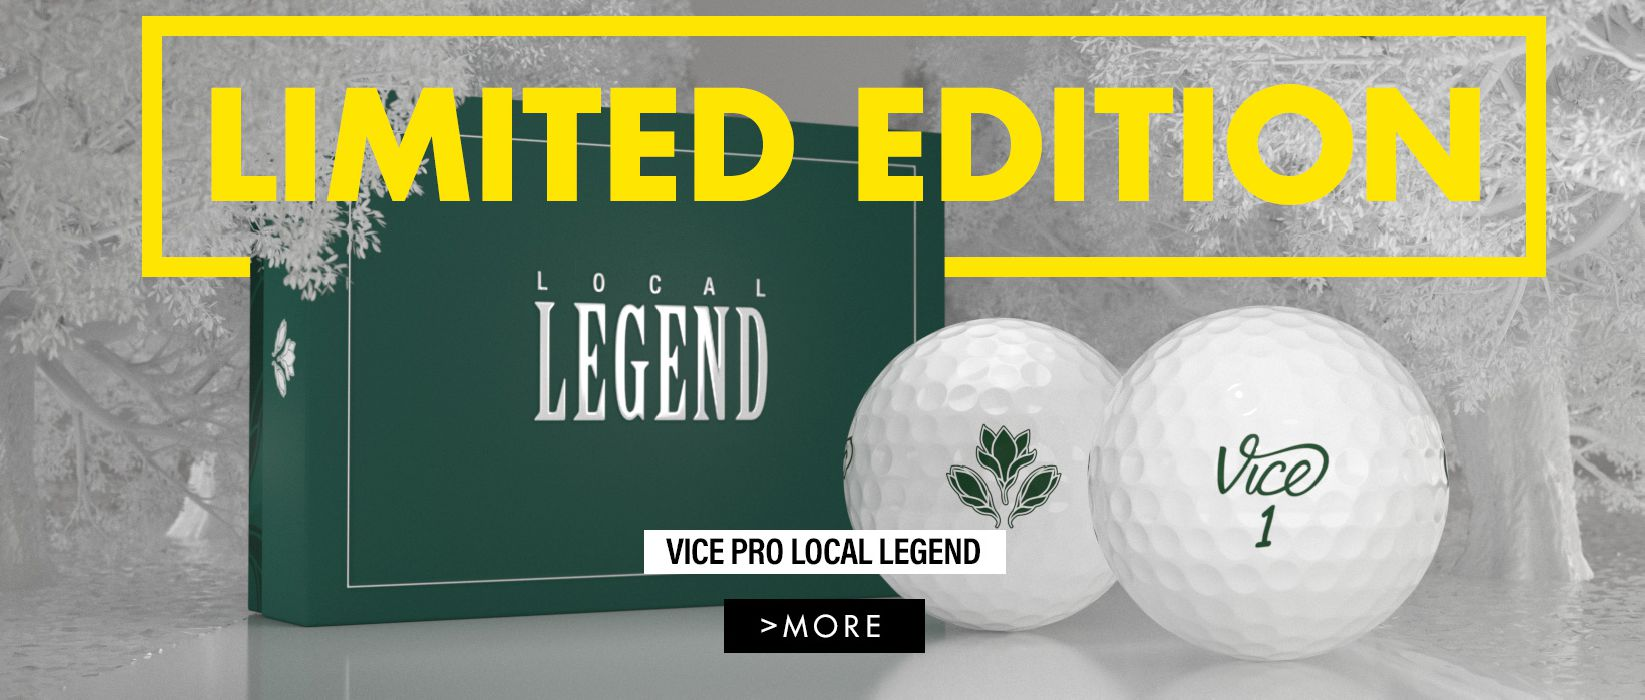 href='vice-golf-pro-white-local-legend-2019'